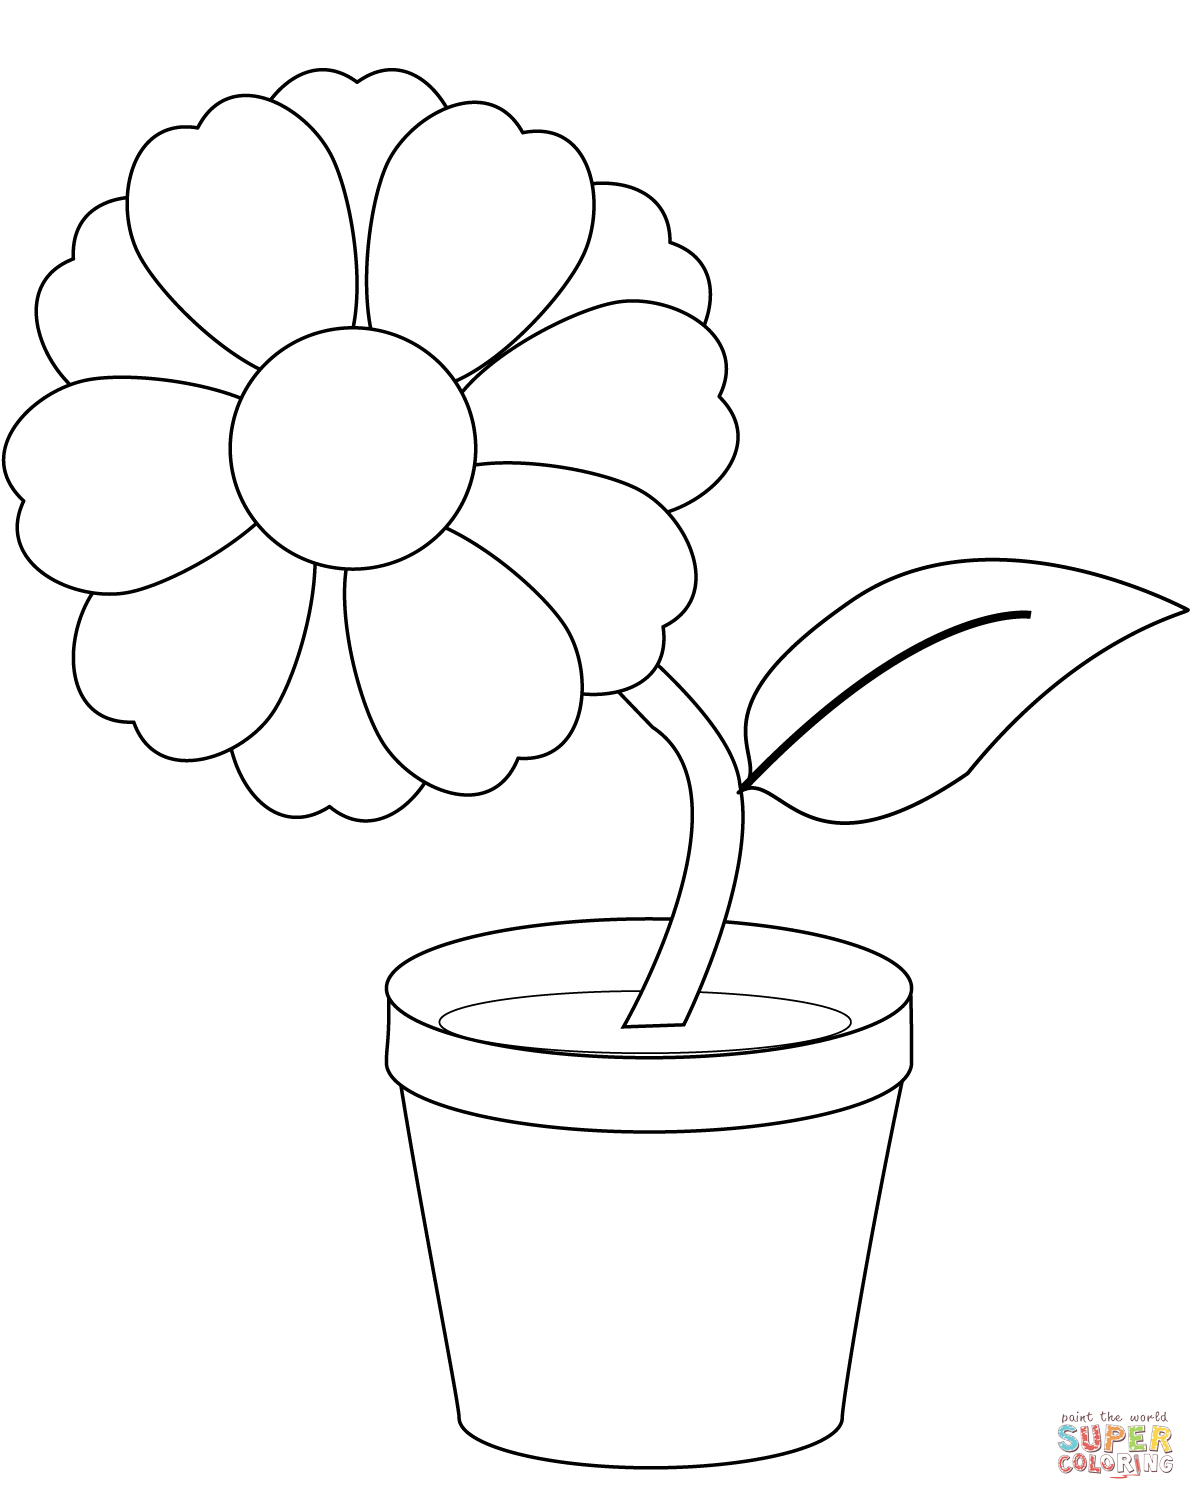 image relating to Printable Flower Pot named Flower Pot Coloring Web page Flower Within A Pot Coloring Site Free of charge